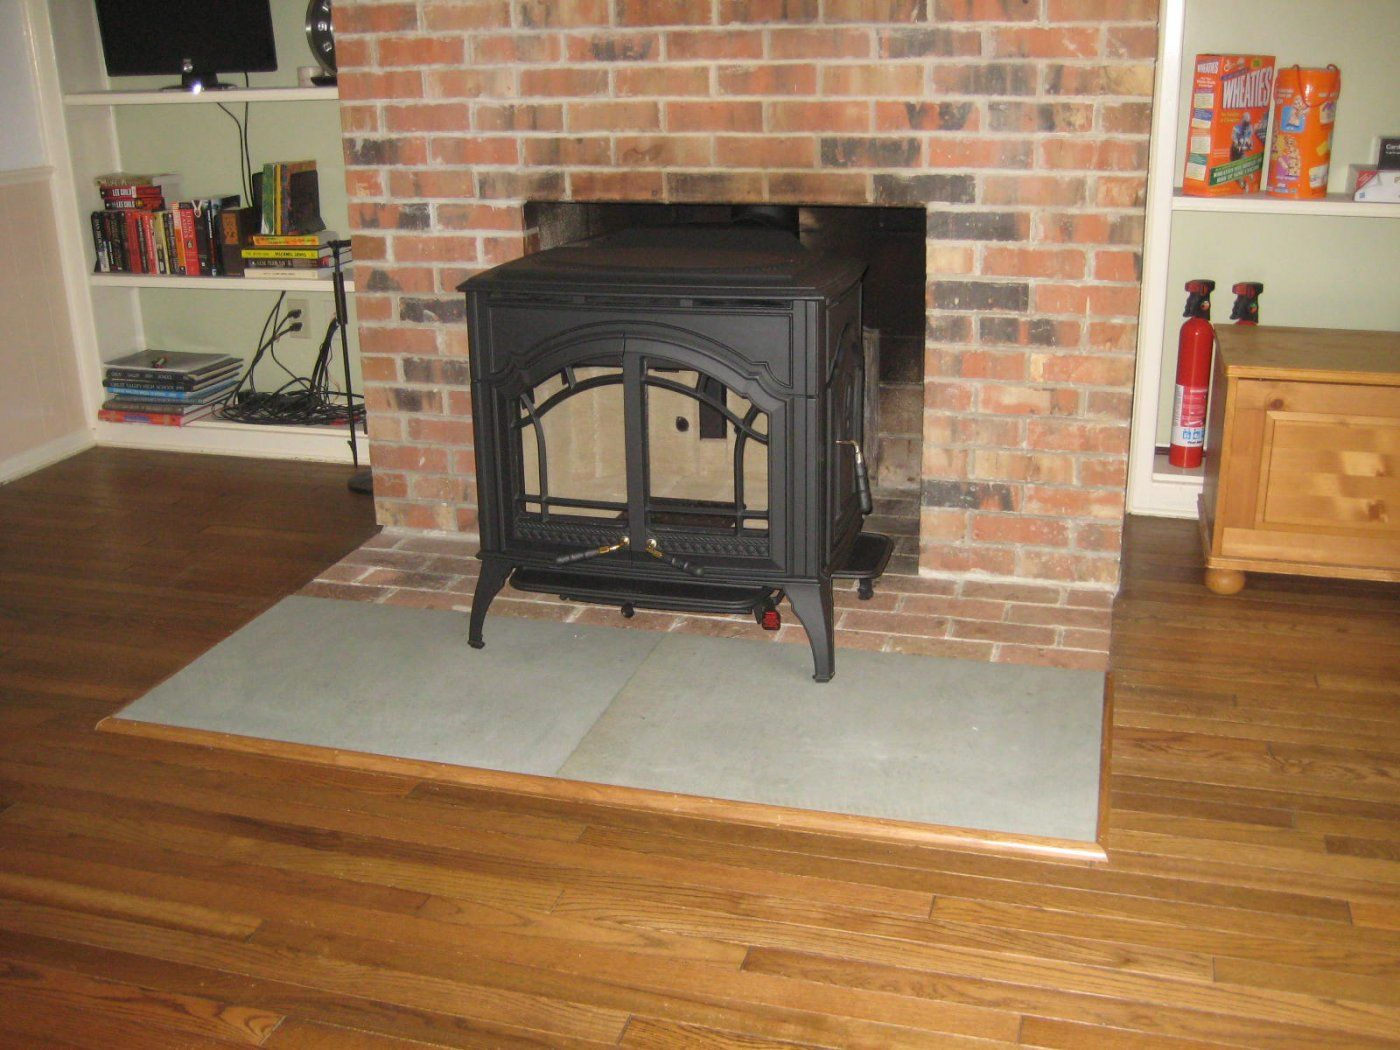 Thanks for all the great information on wood stoves!  I